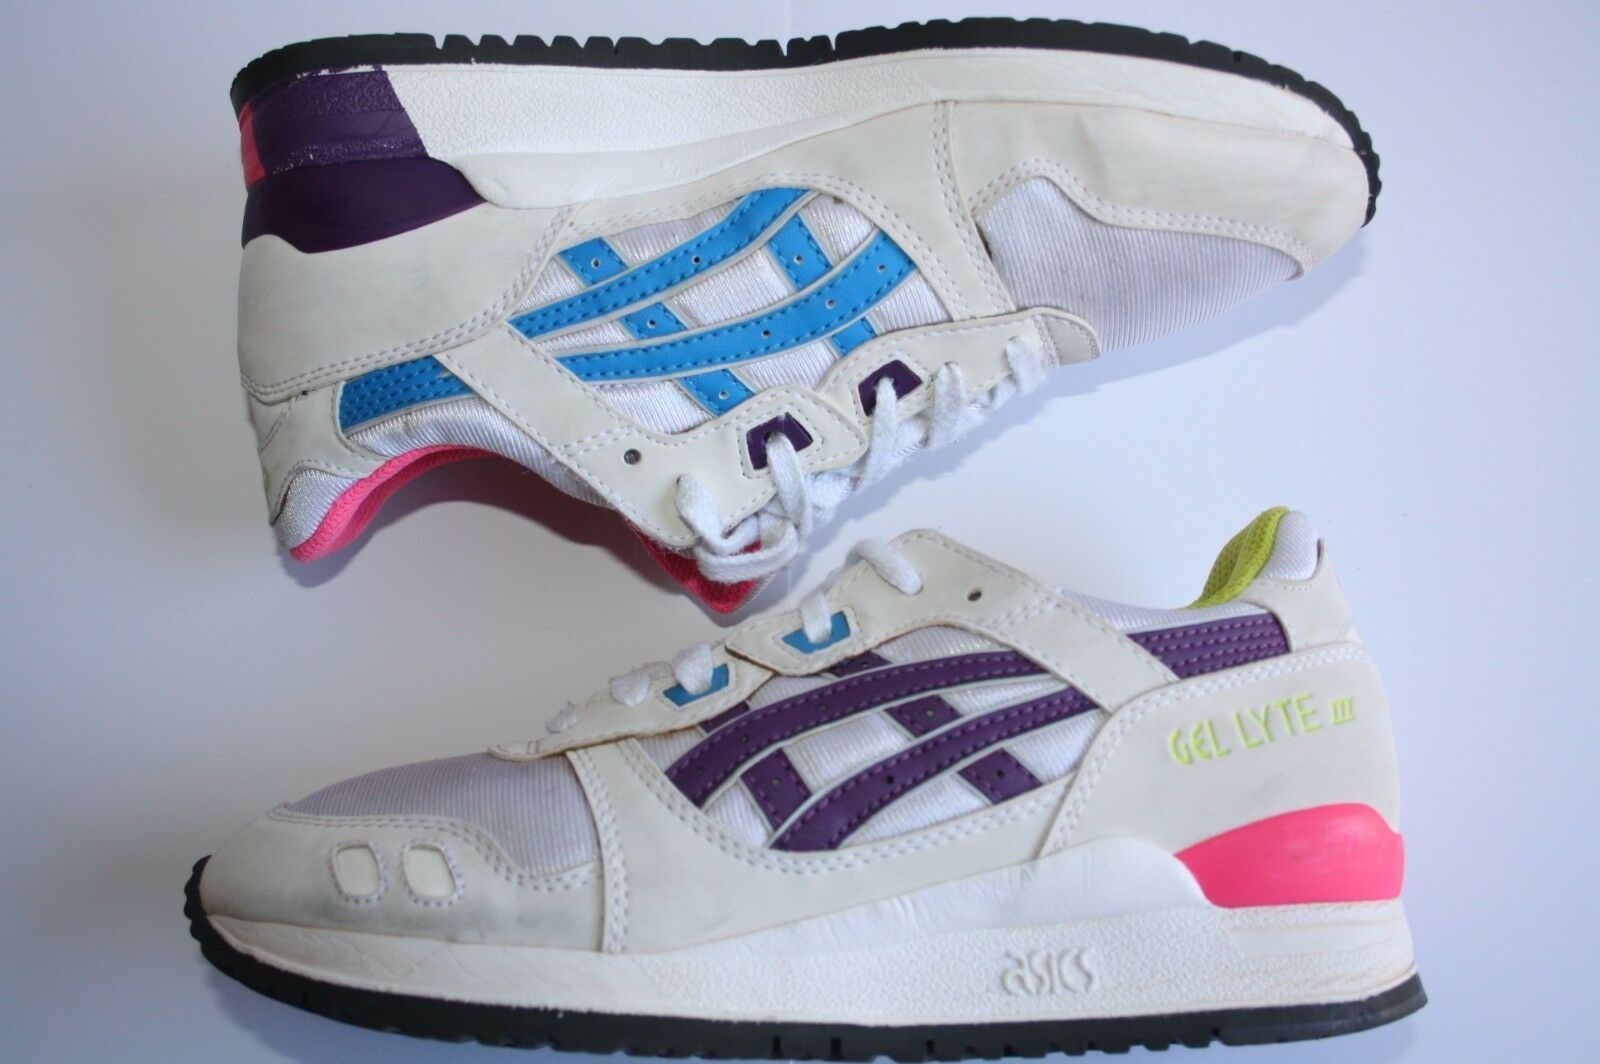 Vintage RARE 90 Gel Lyte 3 III Kith Supreme Asics Shoe Sneaks Ronnie Feig Price reduction Wild casual shoes